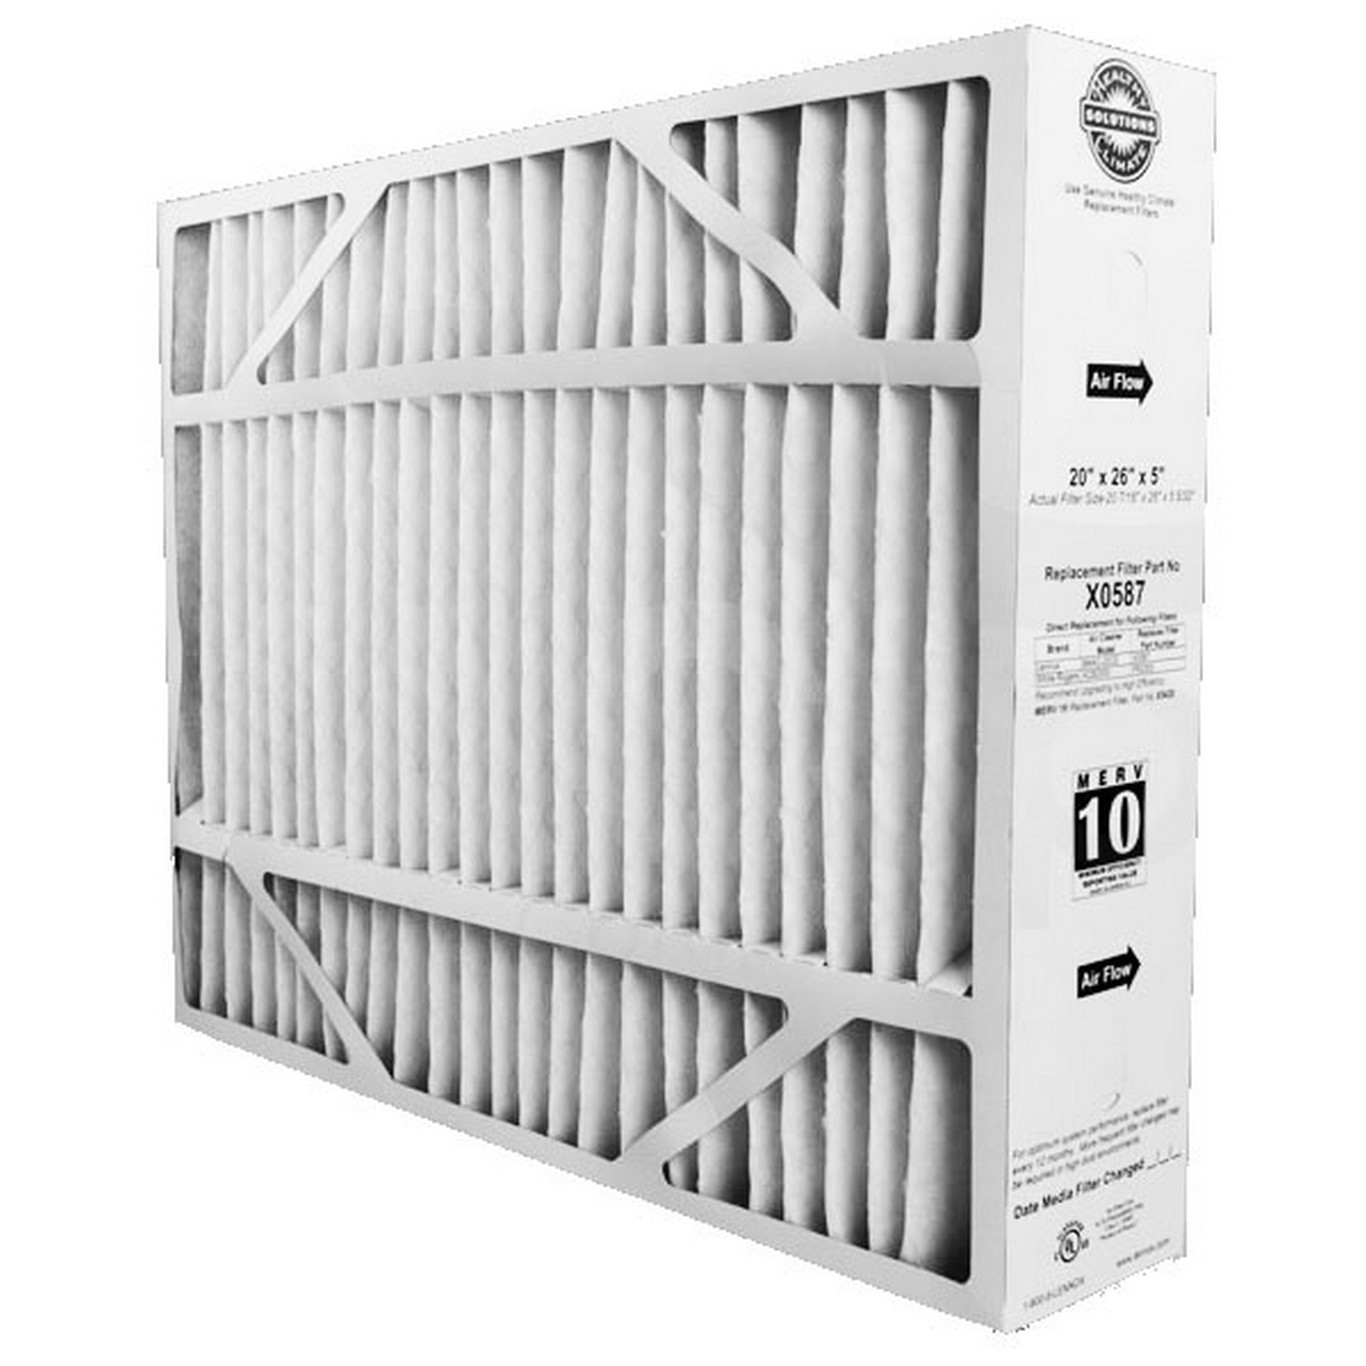 Lennox Air Filters Furnace Filters # 2016 Car Release Date #3A3A3A